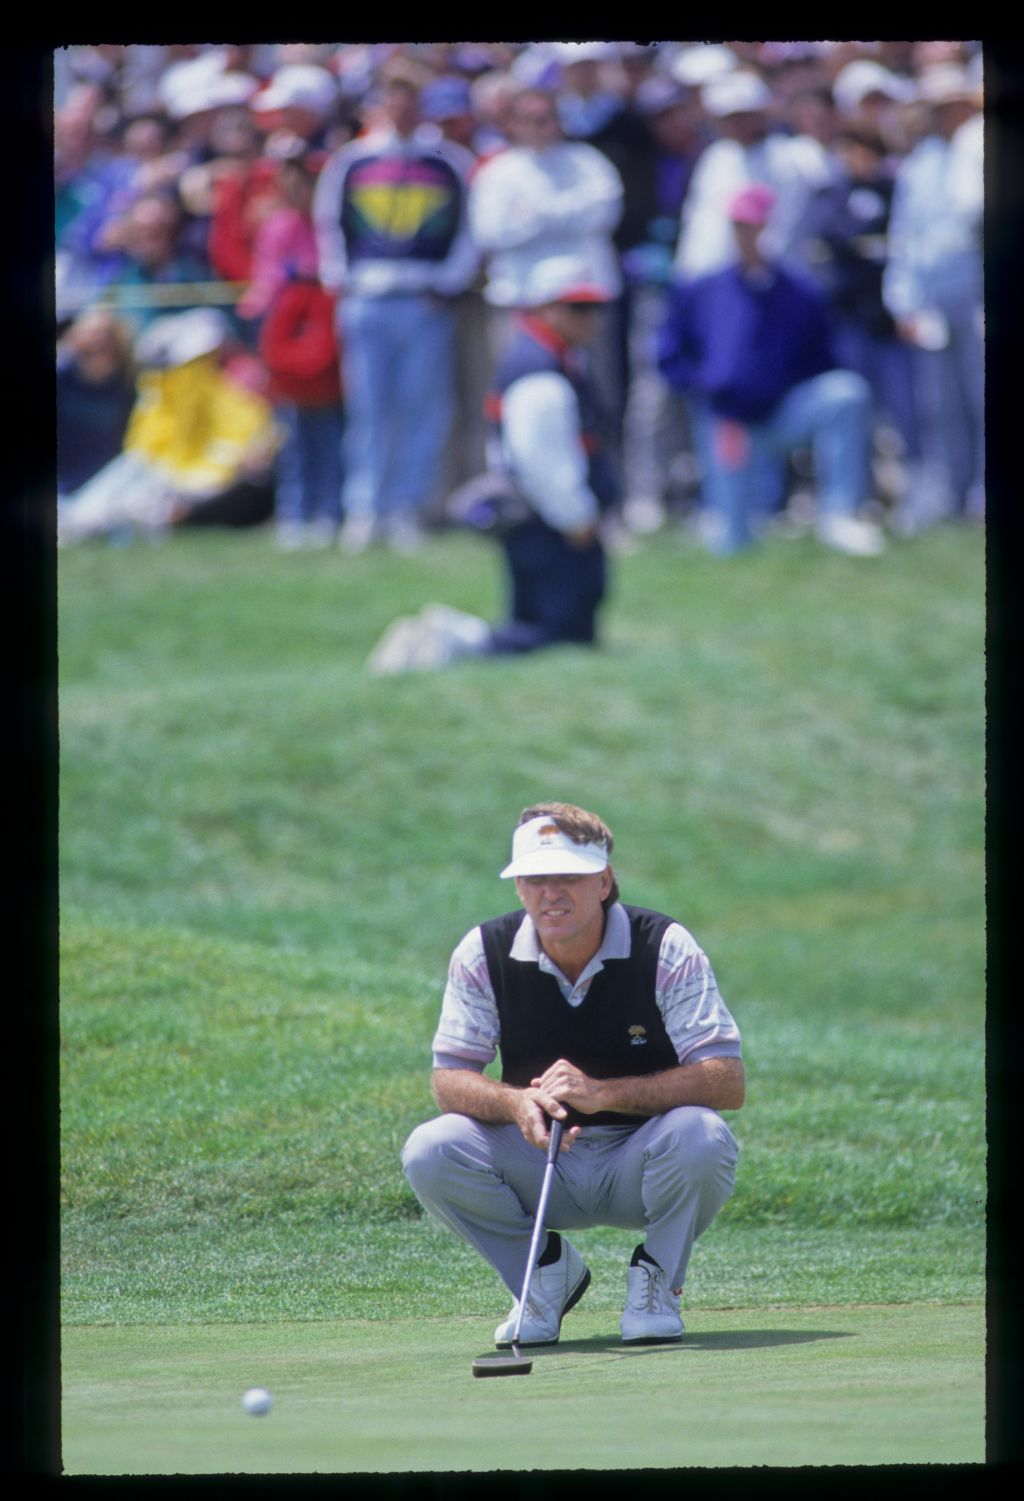 Gil Morgan lining up a putt during the 1992 US Open